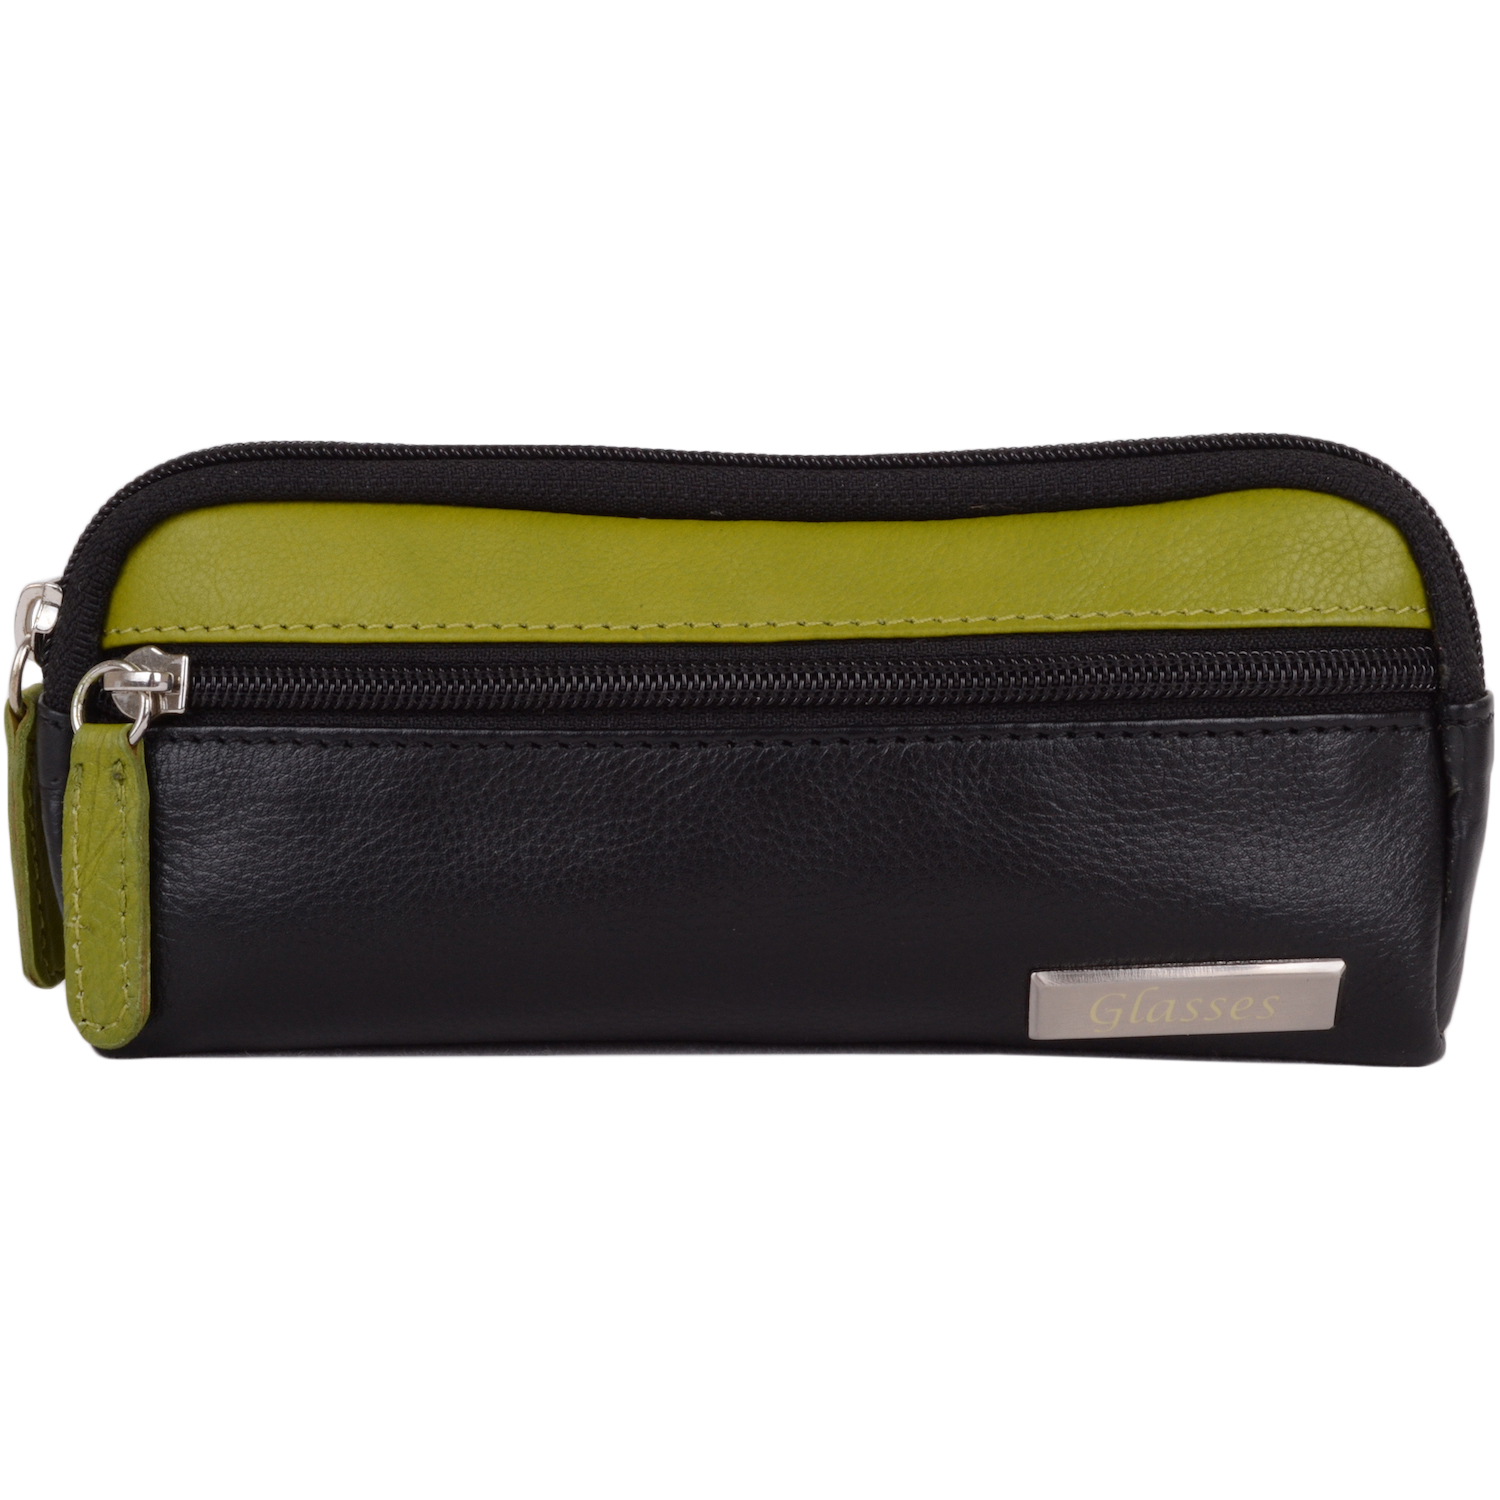 Soft Leather Glasses Case - Daisy